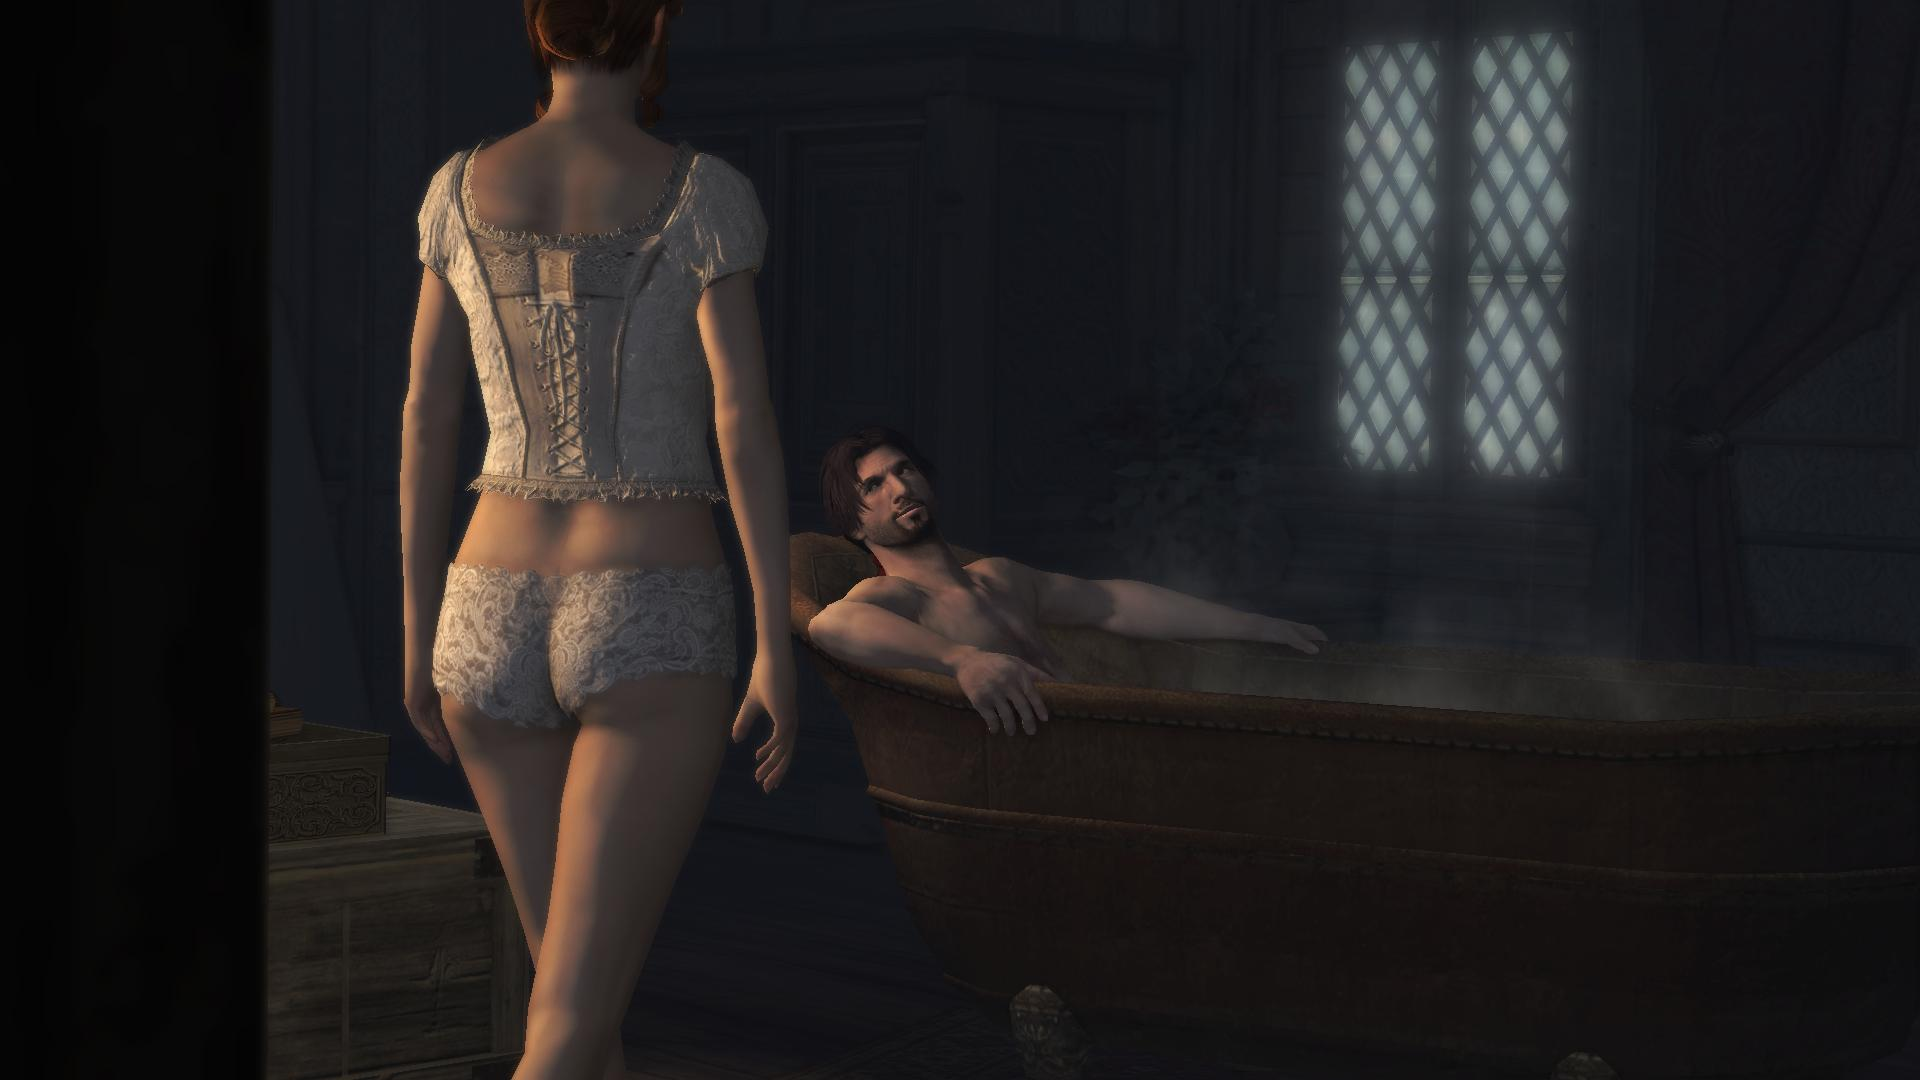 Assassin creed brotherhood nude skin mod adult scenes